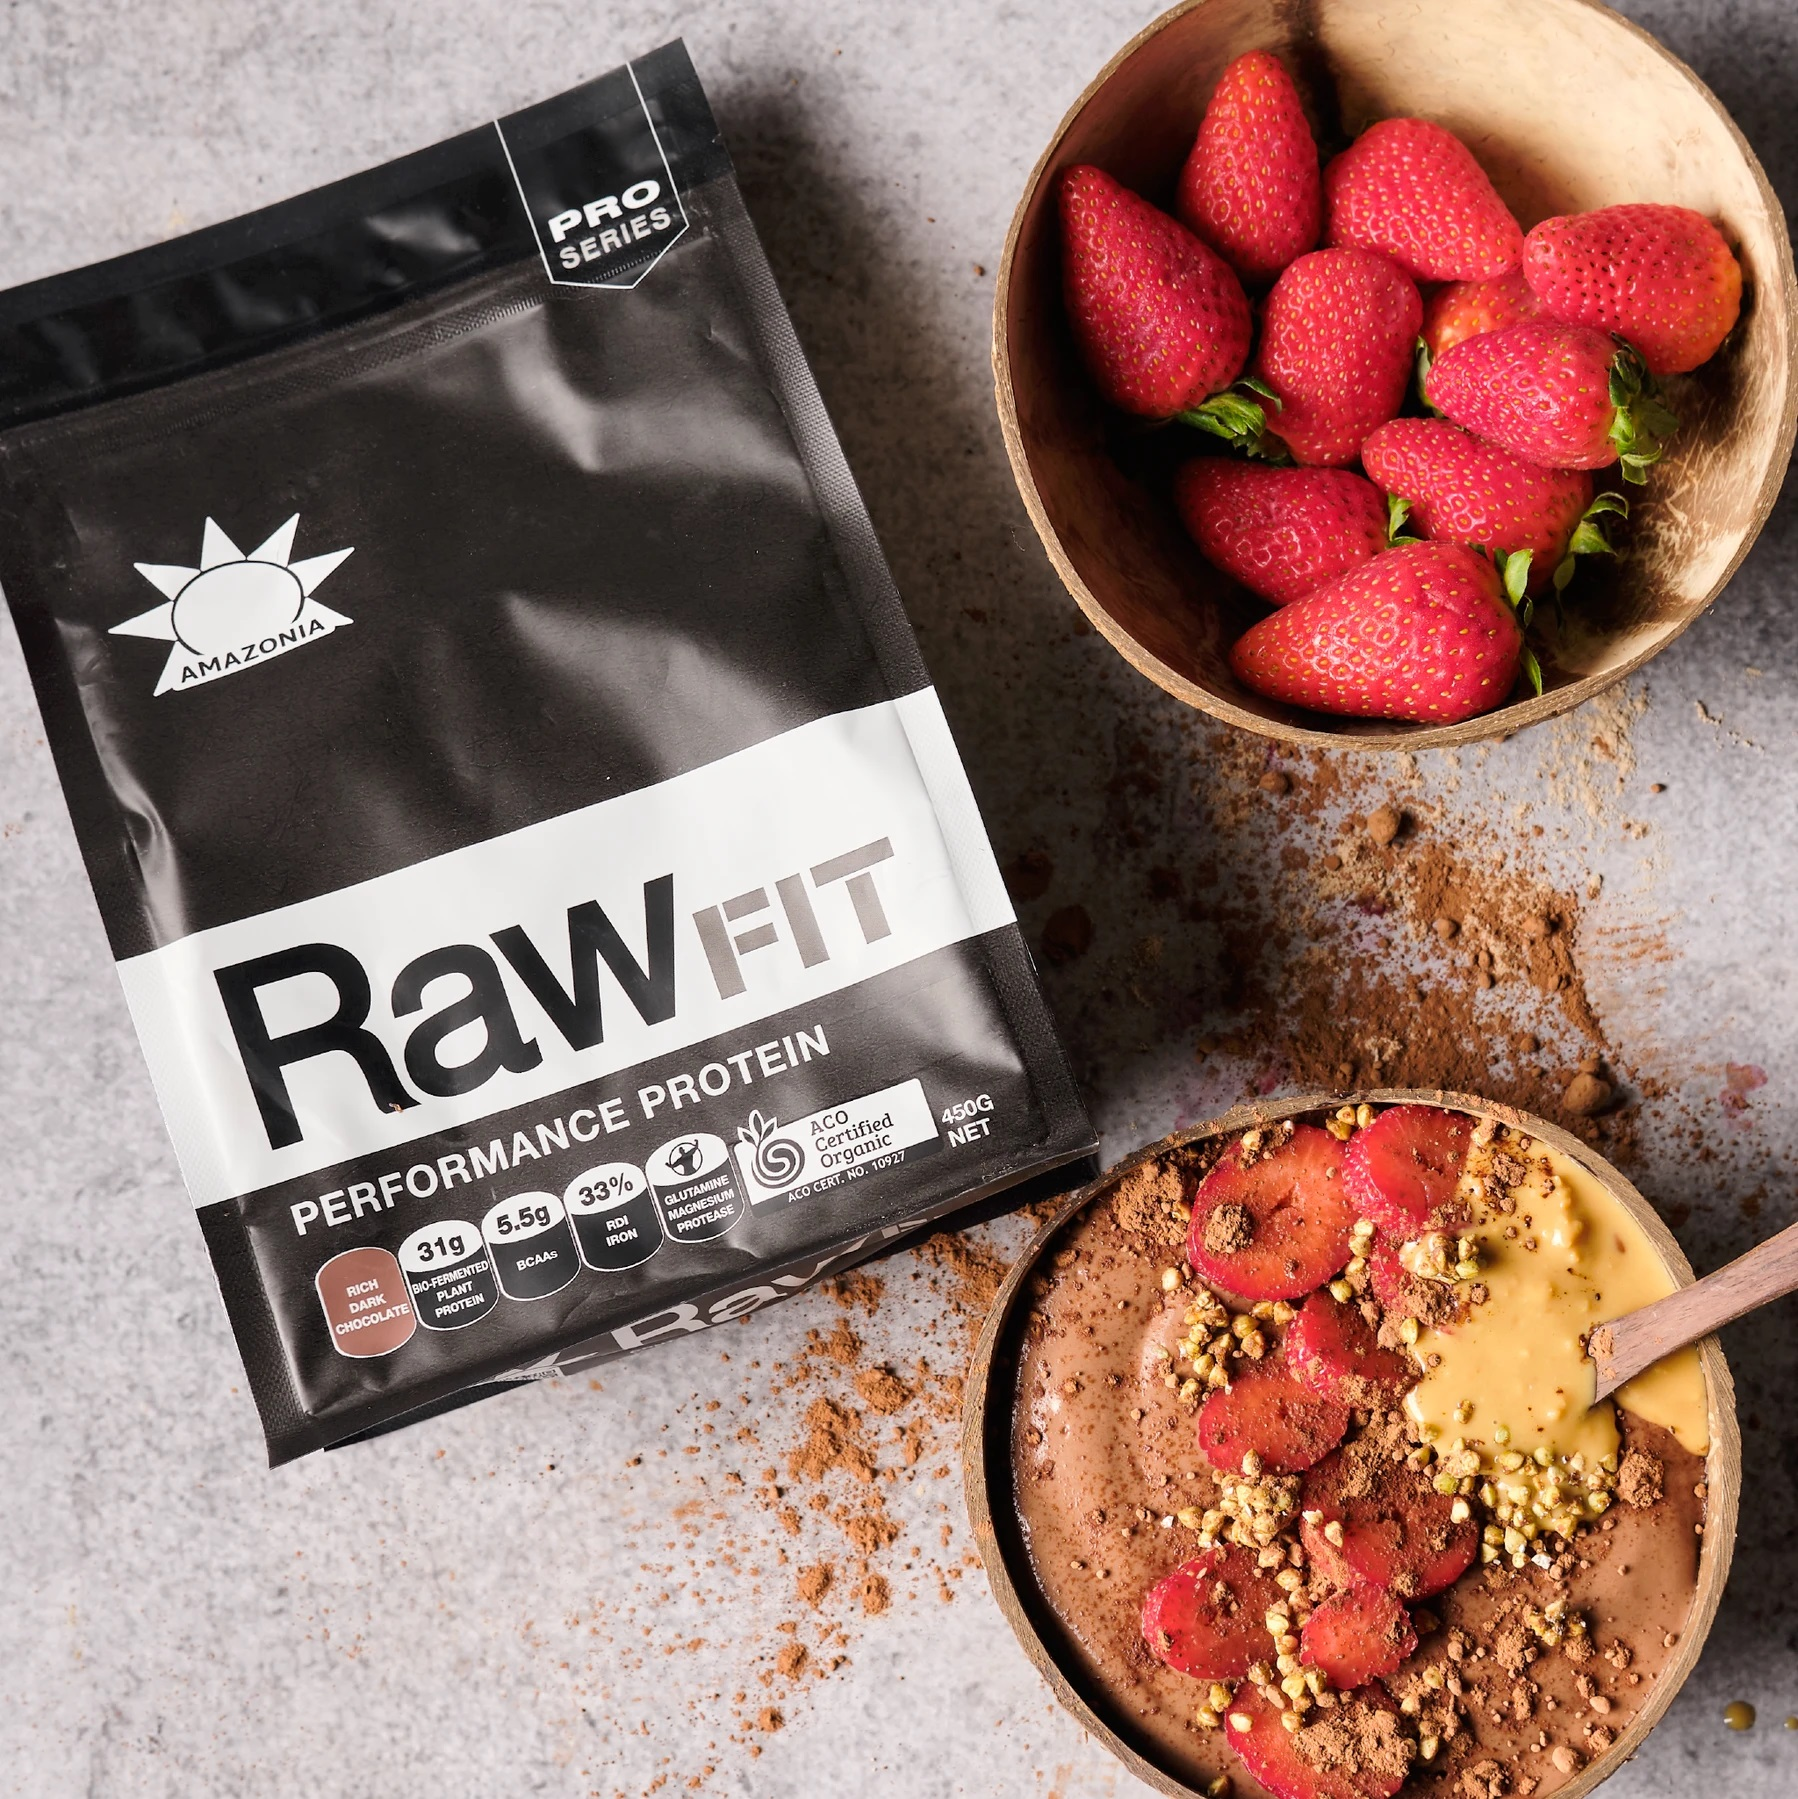 rawfit protein performance